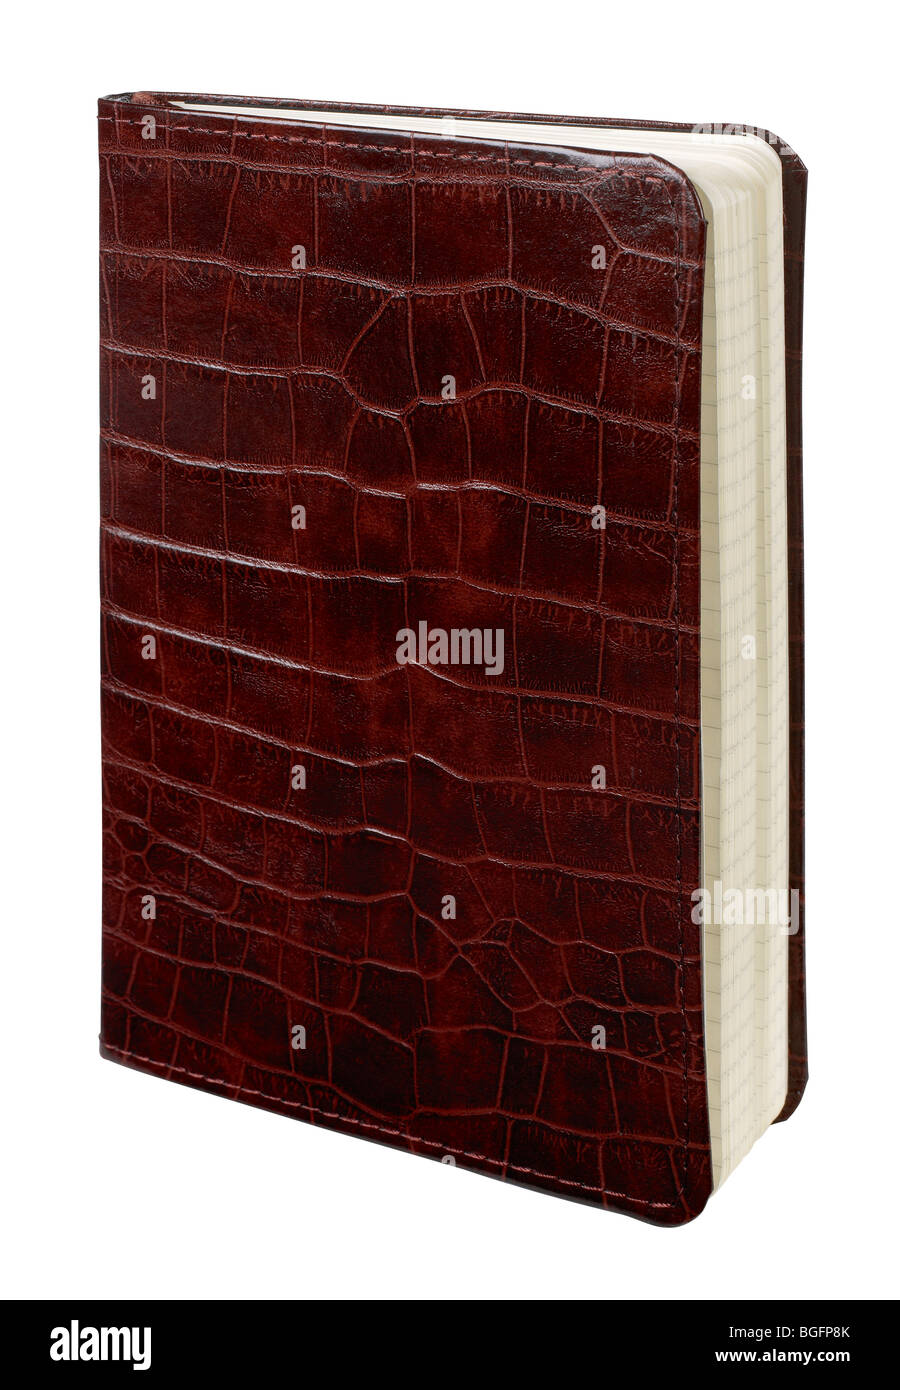 Relié en cuir texturé marron crocodile livre journal grand livre journal Photo Stock